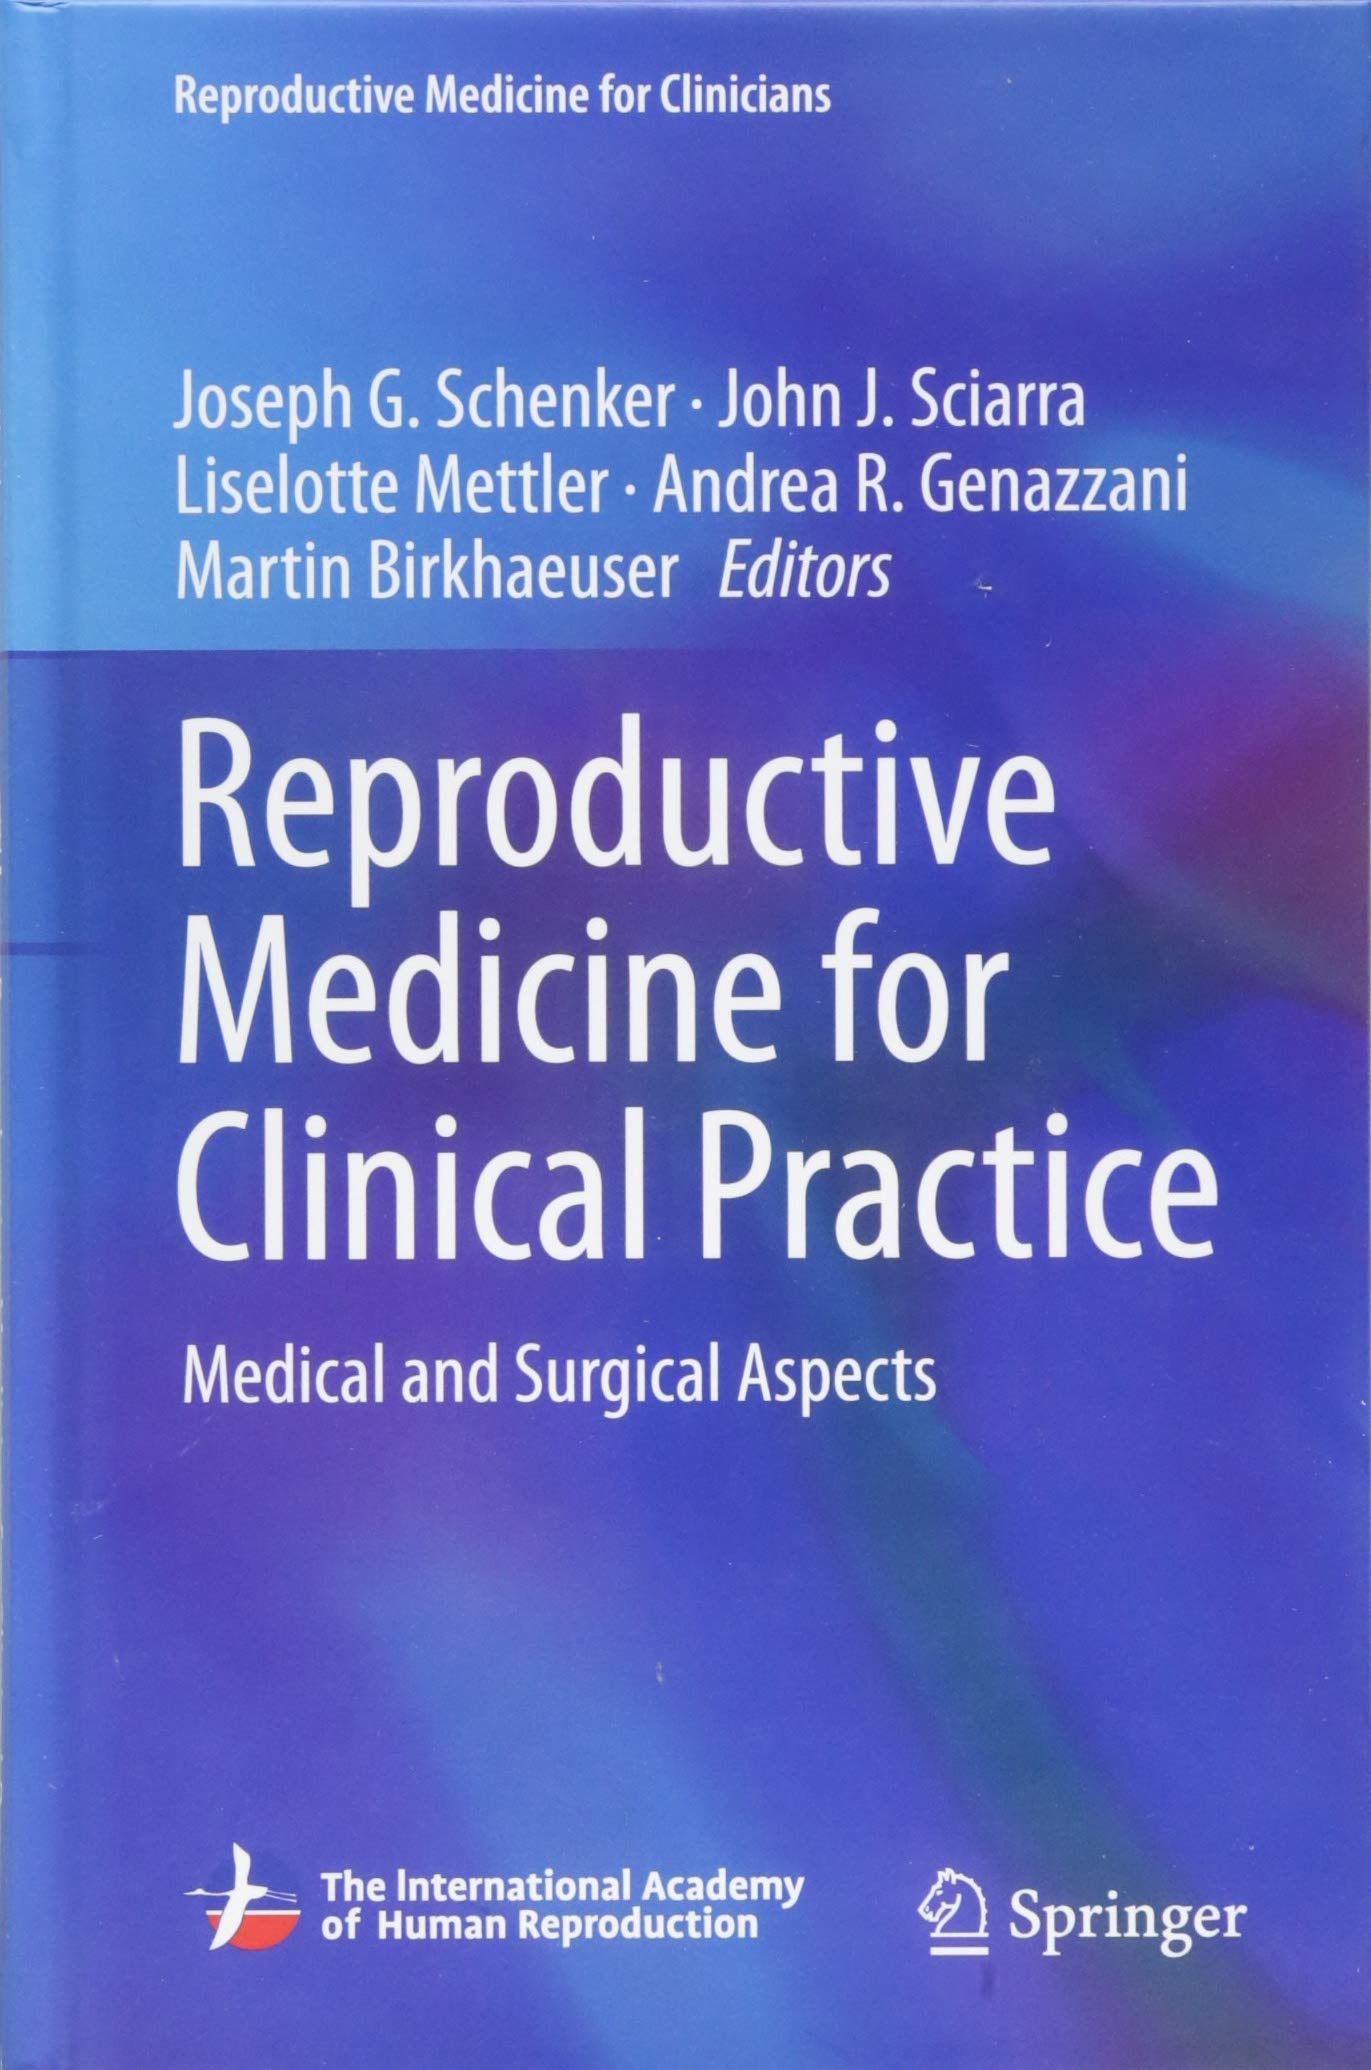 Reproductive Medicine for Clinical Practice: Medical and Surgical Aspects (Reproductive Medicine for Clinicians) by Springer